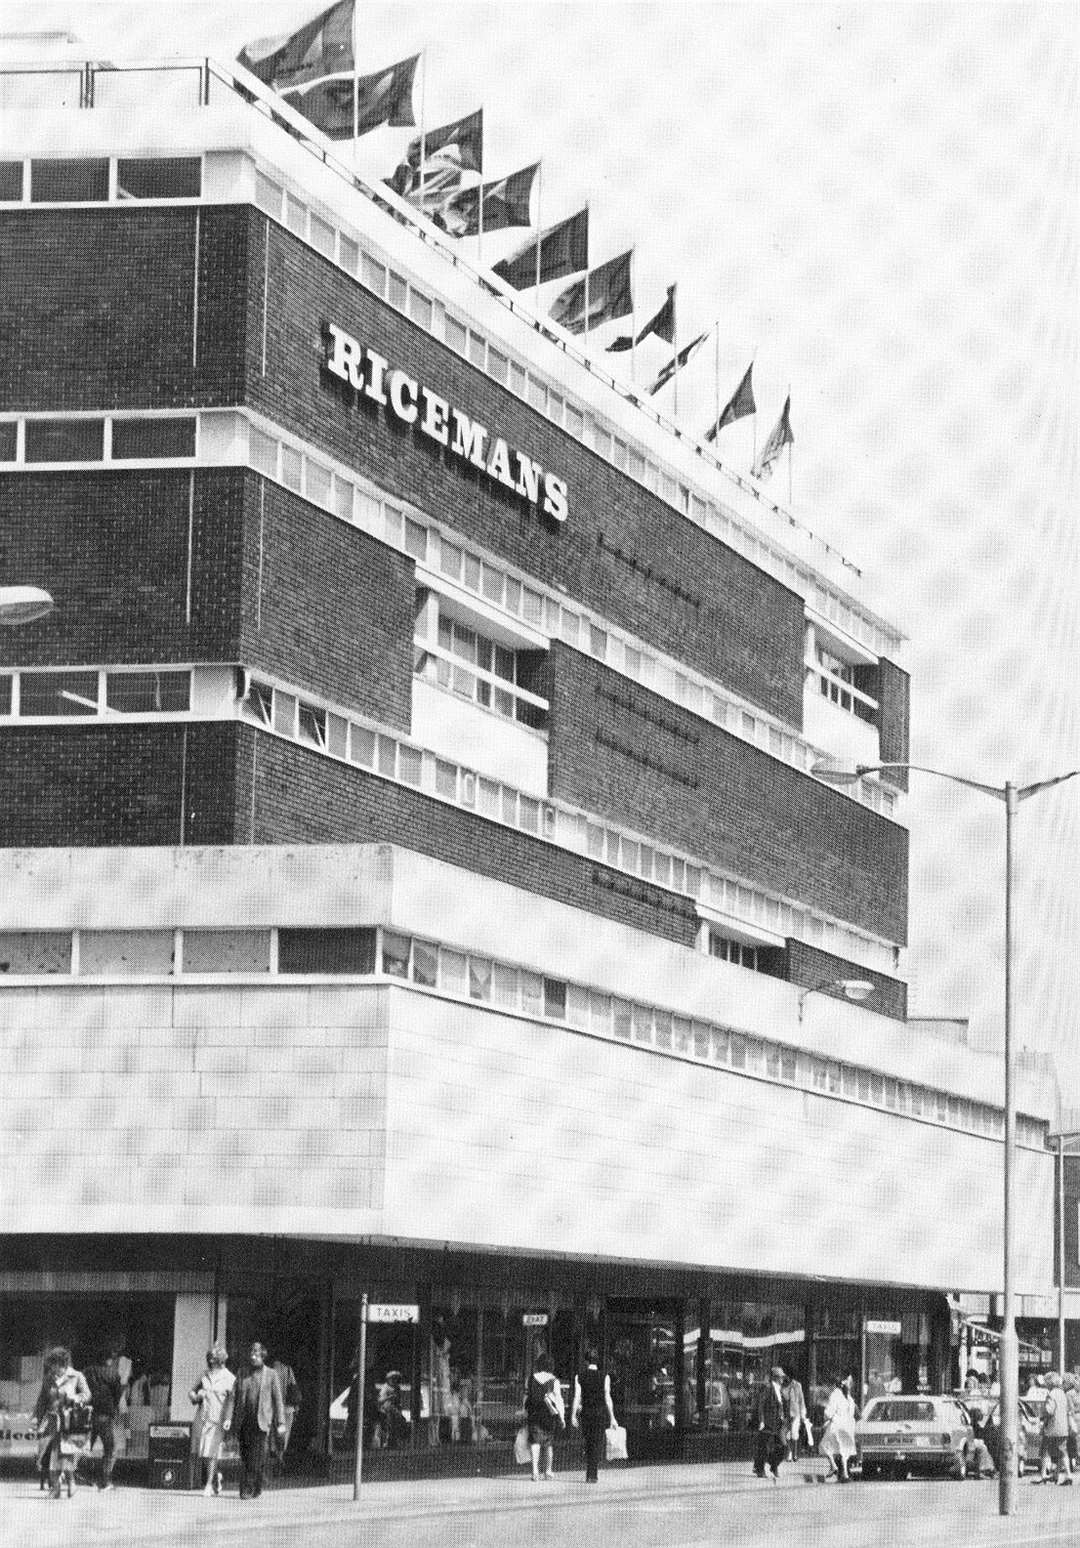 Ricemans in Canterbury, before it was torn down to make way for Whitefriars